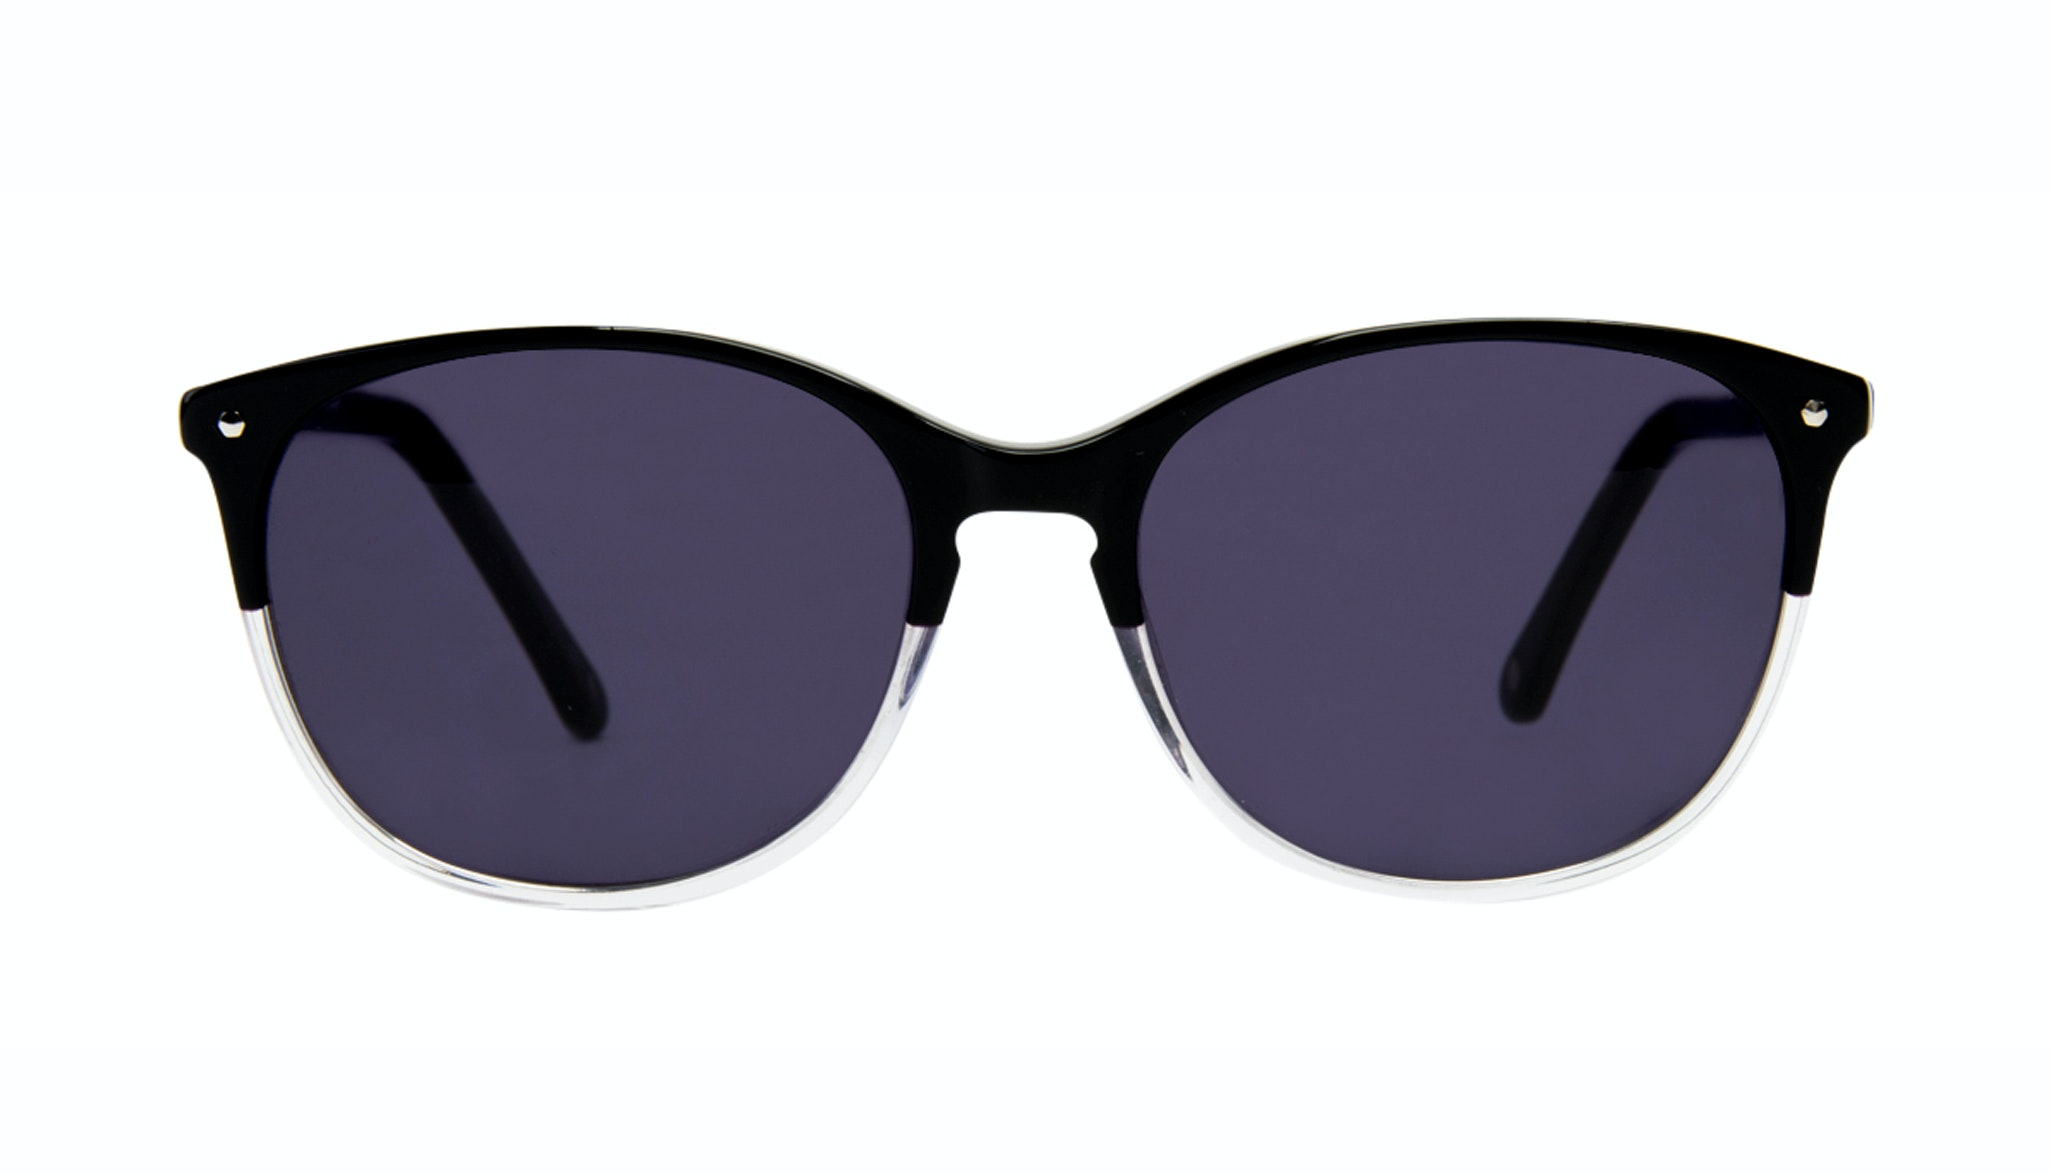 Affordable Fashion Glasses Rectangle Round Sunglasses Women Nadine Two Tone Black